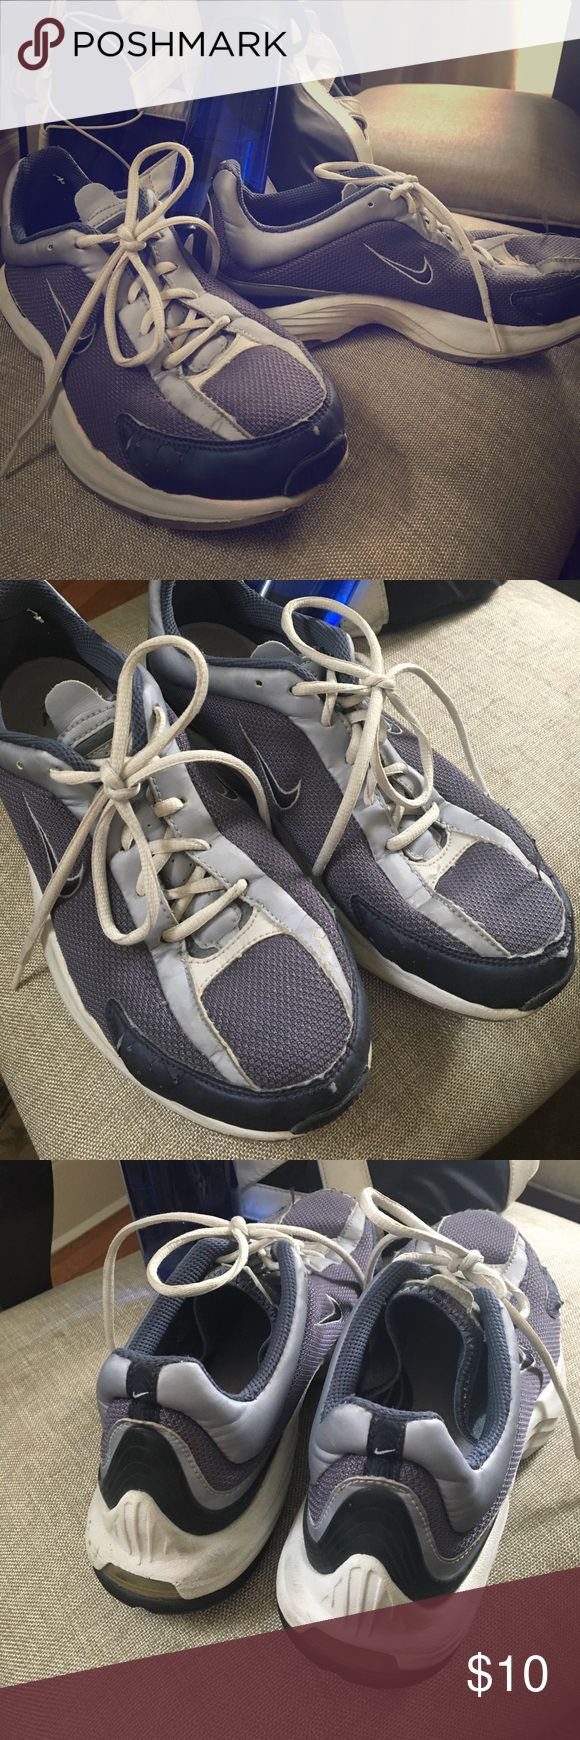 NIKE Sneakers Nike somewhat Vintage sneakers that show some wear and cracks but are comfy and still look clean. High heel coverage and wide footbed. Size 10 Nike Shoes Sneakers